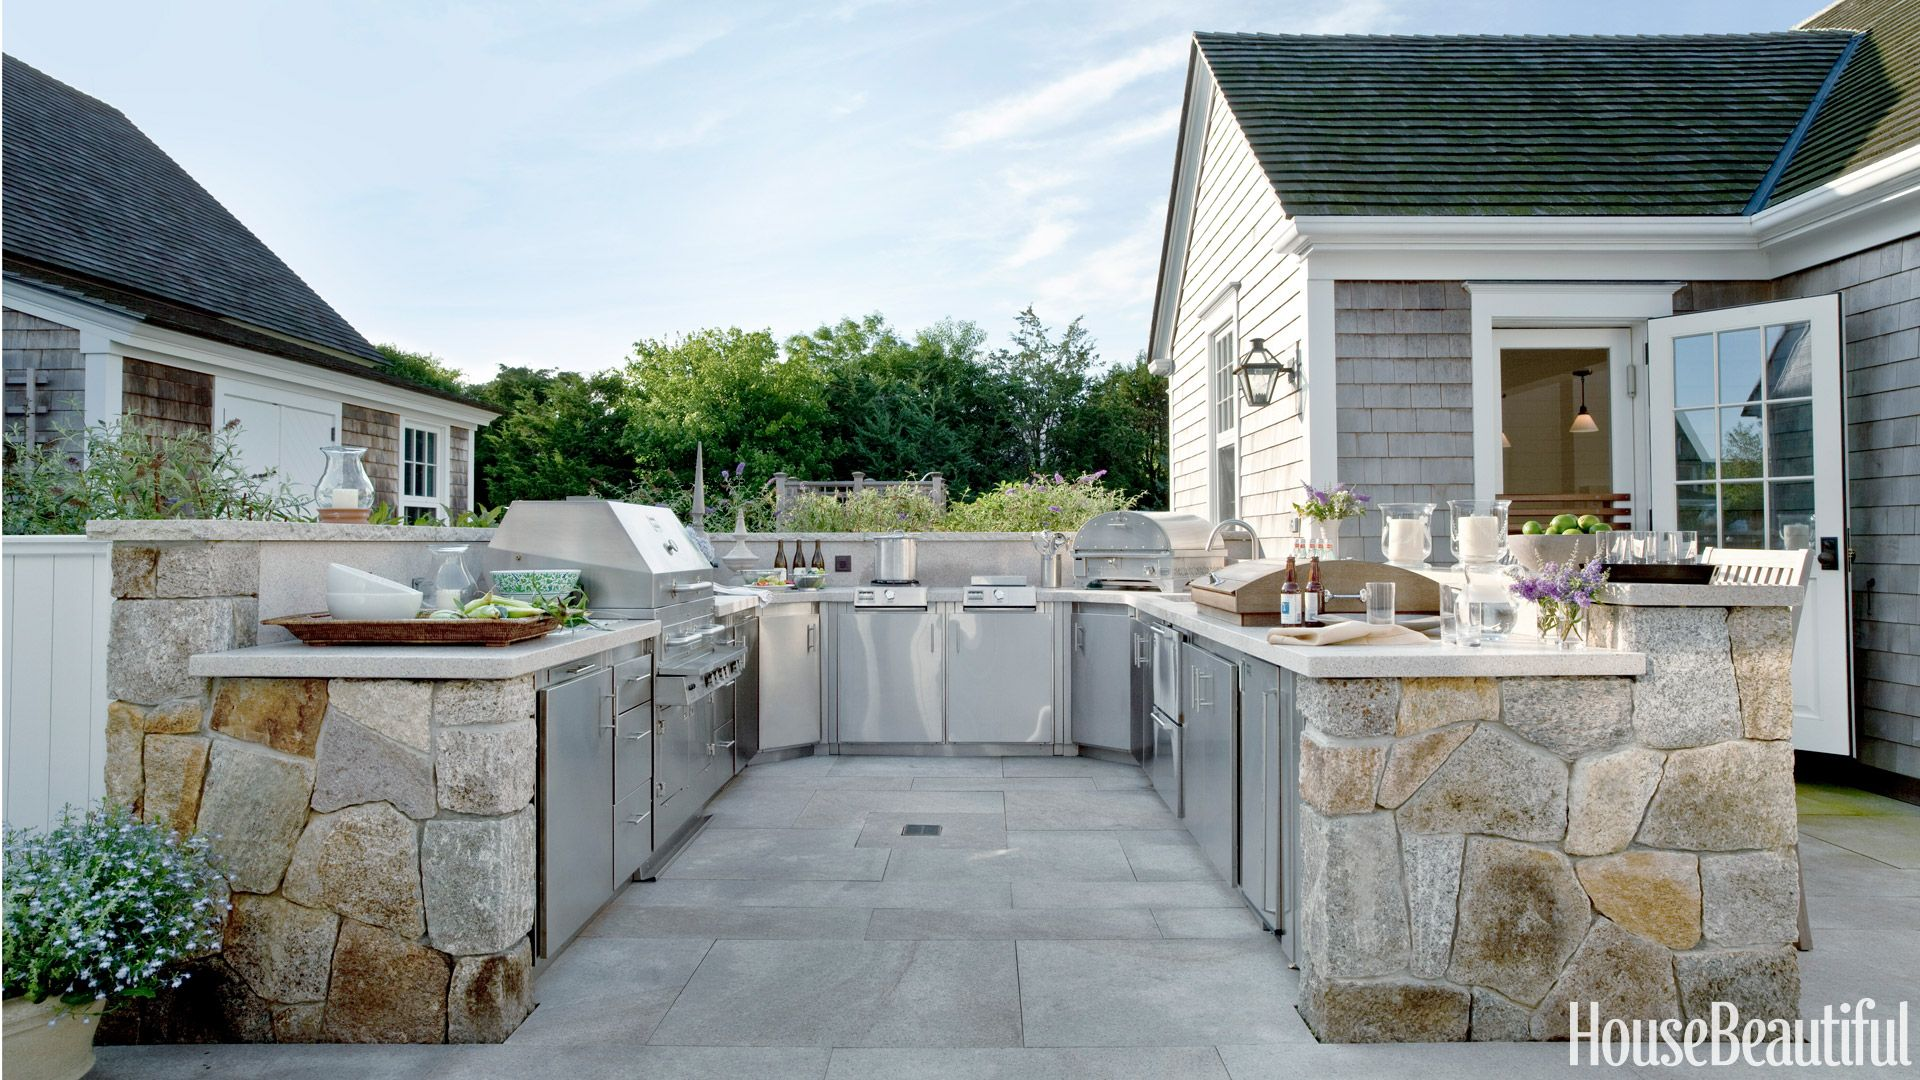 20 outdoor kitchen design ideas and pictures - Outdoor Kitchen Designs Photos